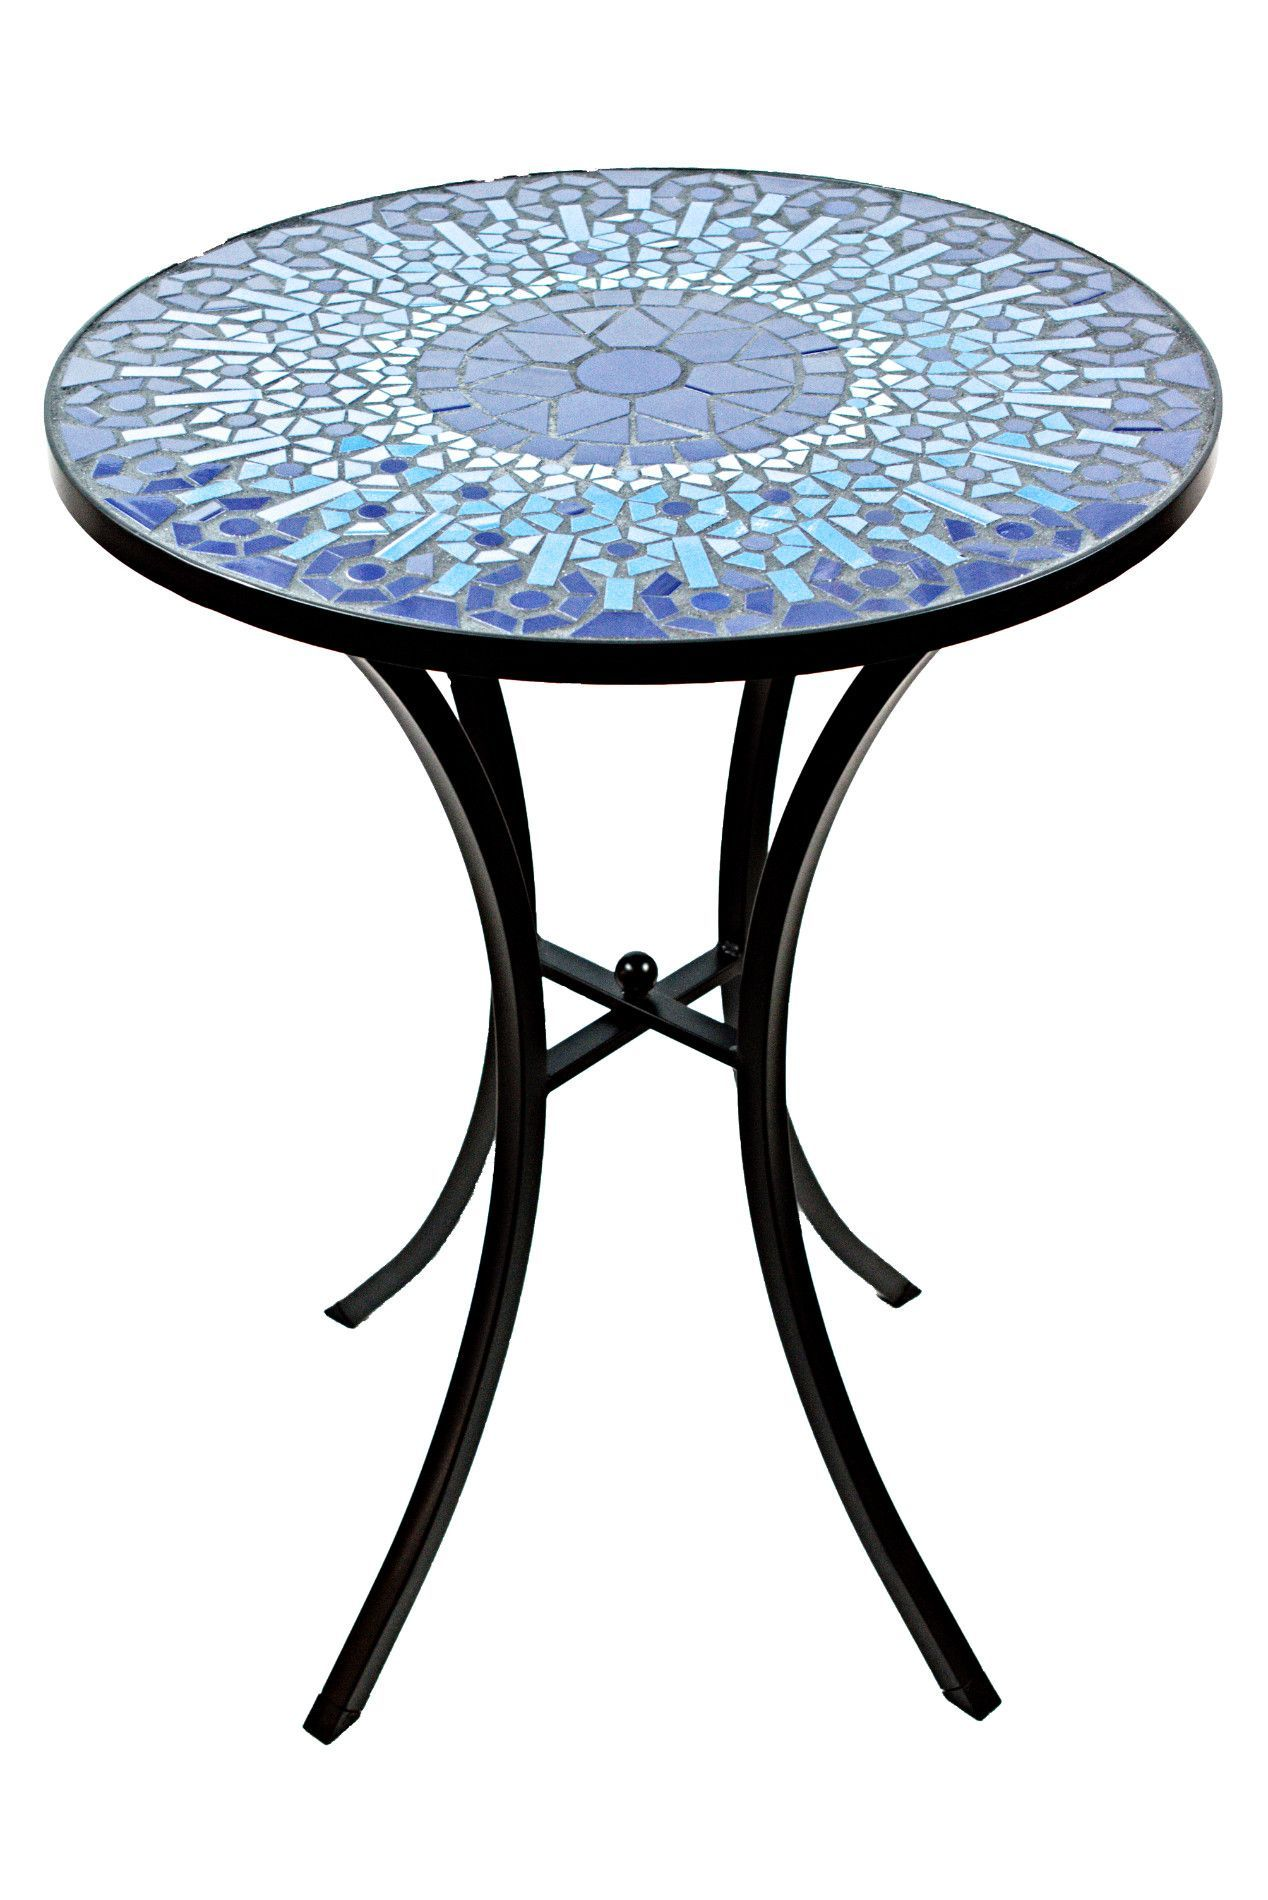 table chantel awesome ceramic outdoor top patio side tables moroccan astonishing mosaic tile small blue mexican full size home bar furniture wood end indoor bistro height kitchen